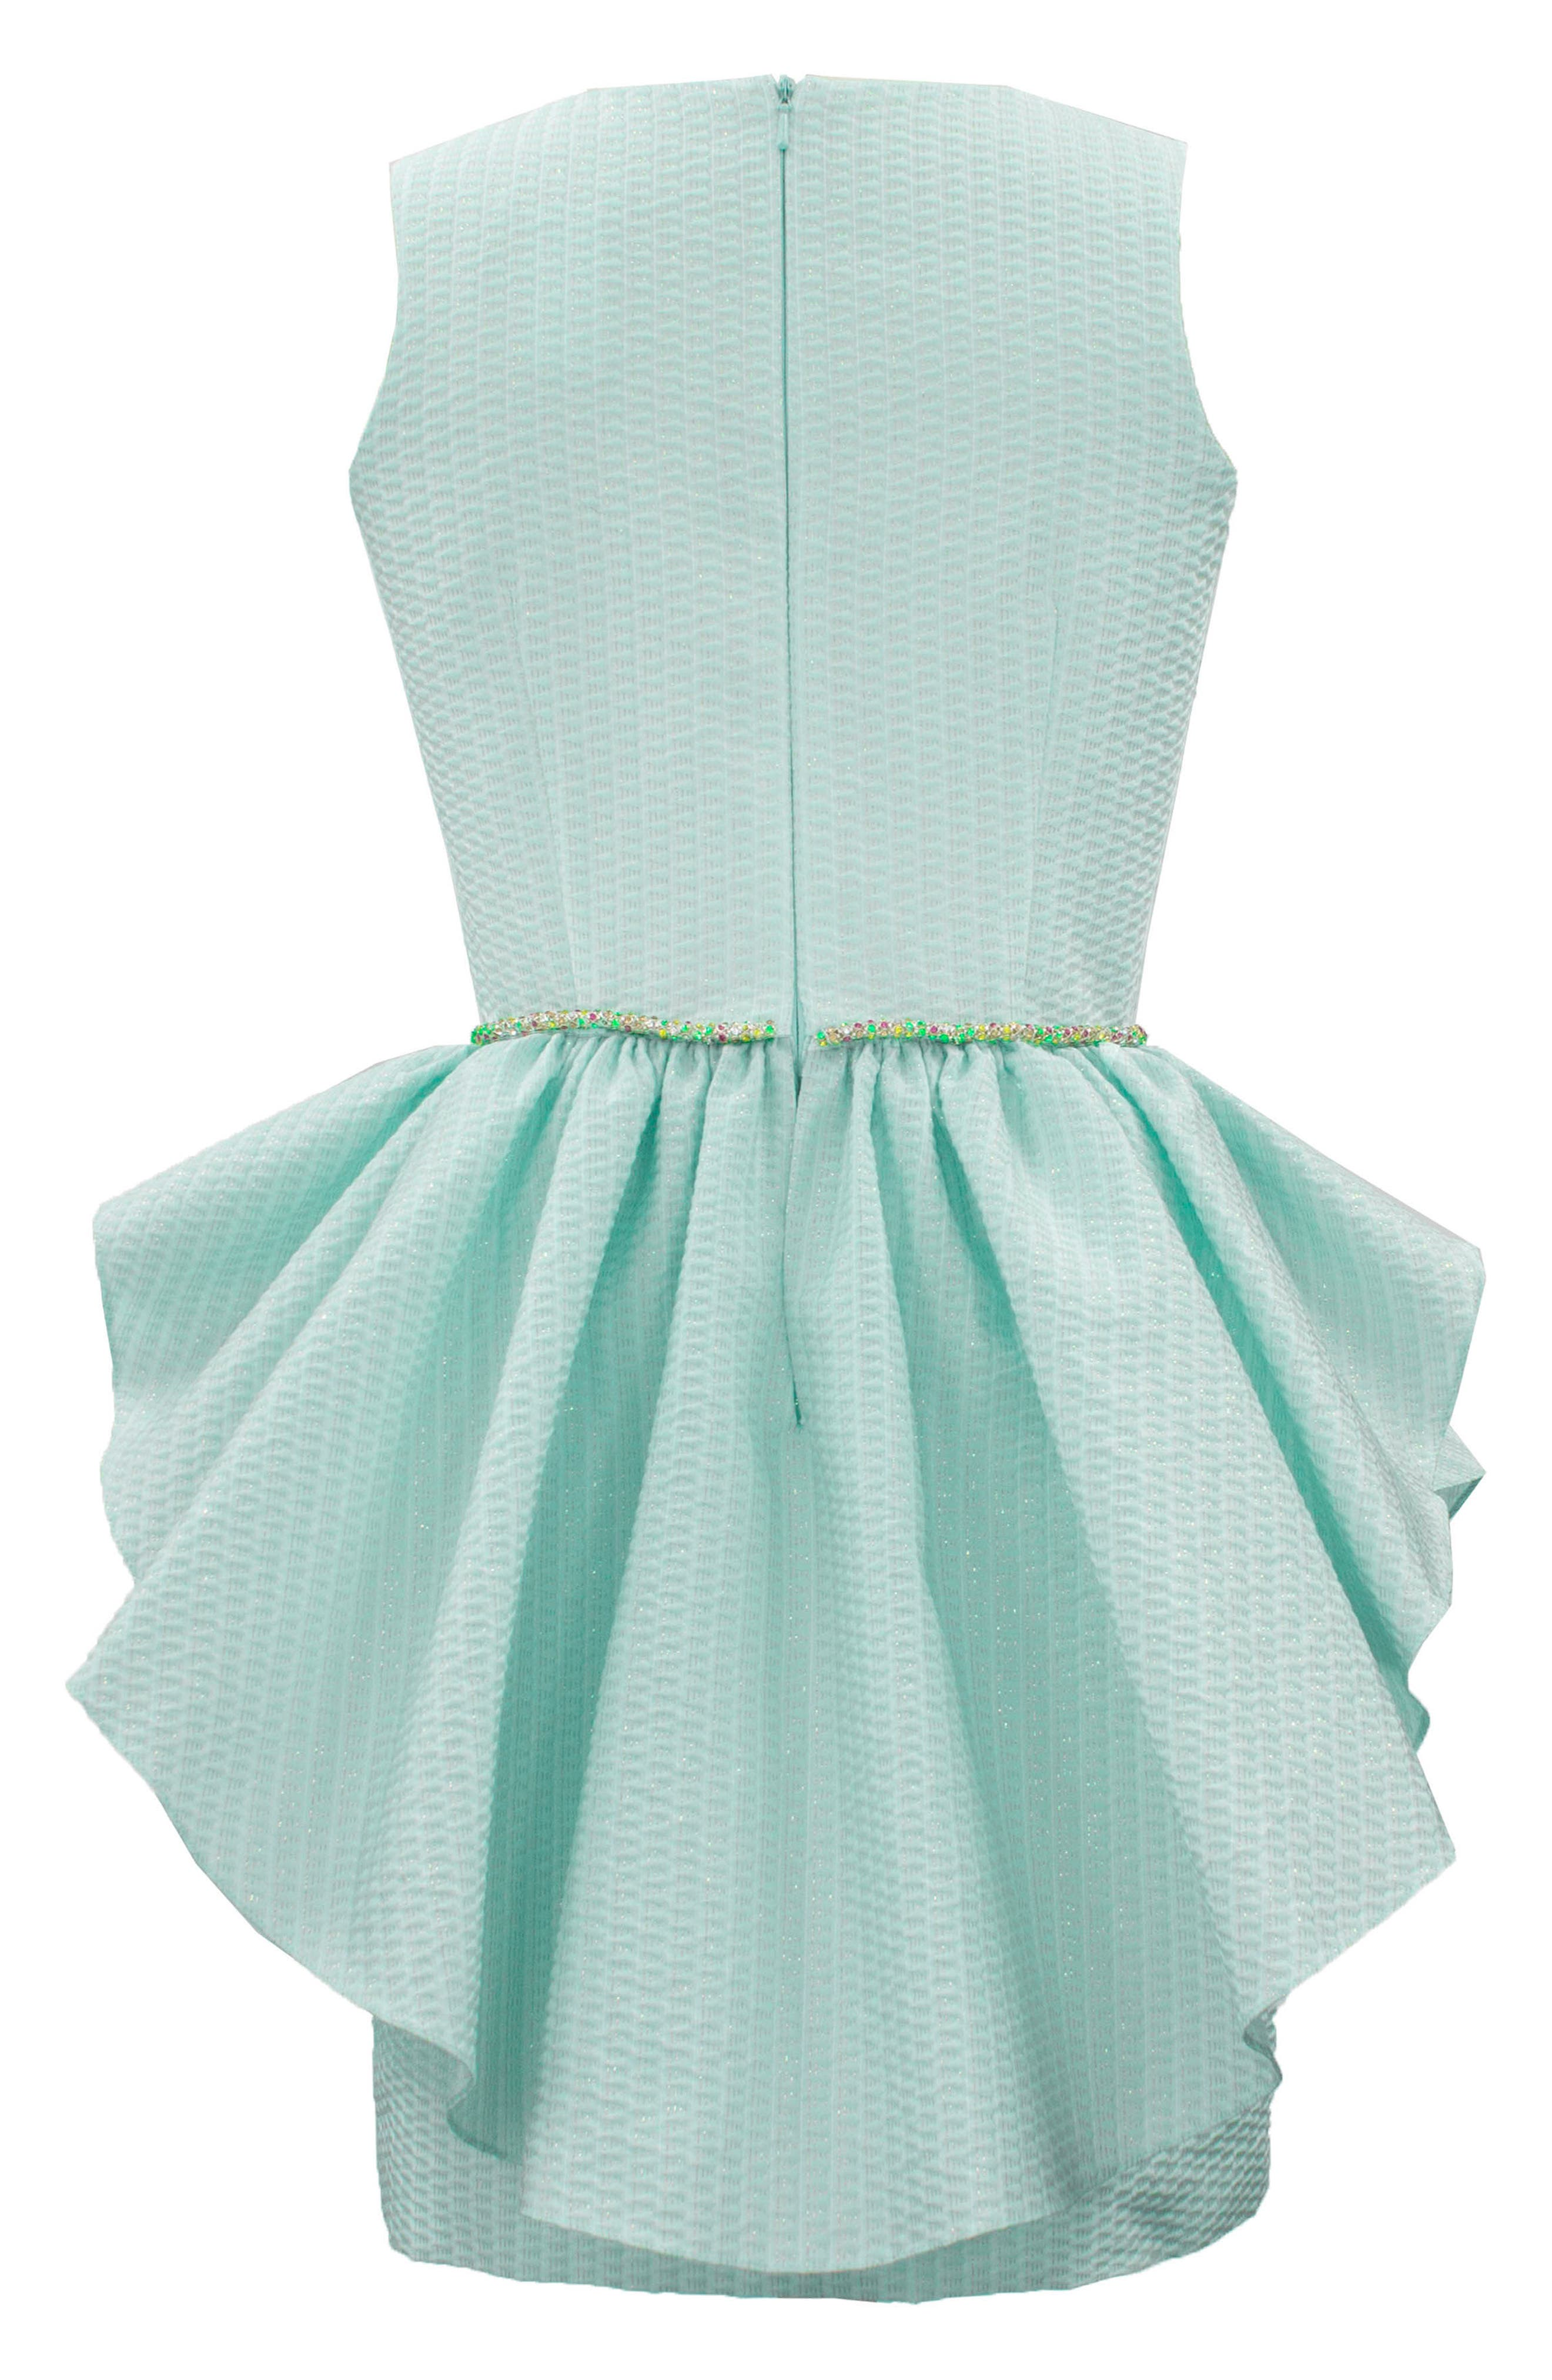 Ruffle Overlay Brocade Dress,                             Alternate thumbnail 2, color,                             Turquoise